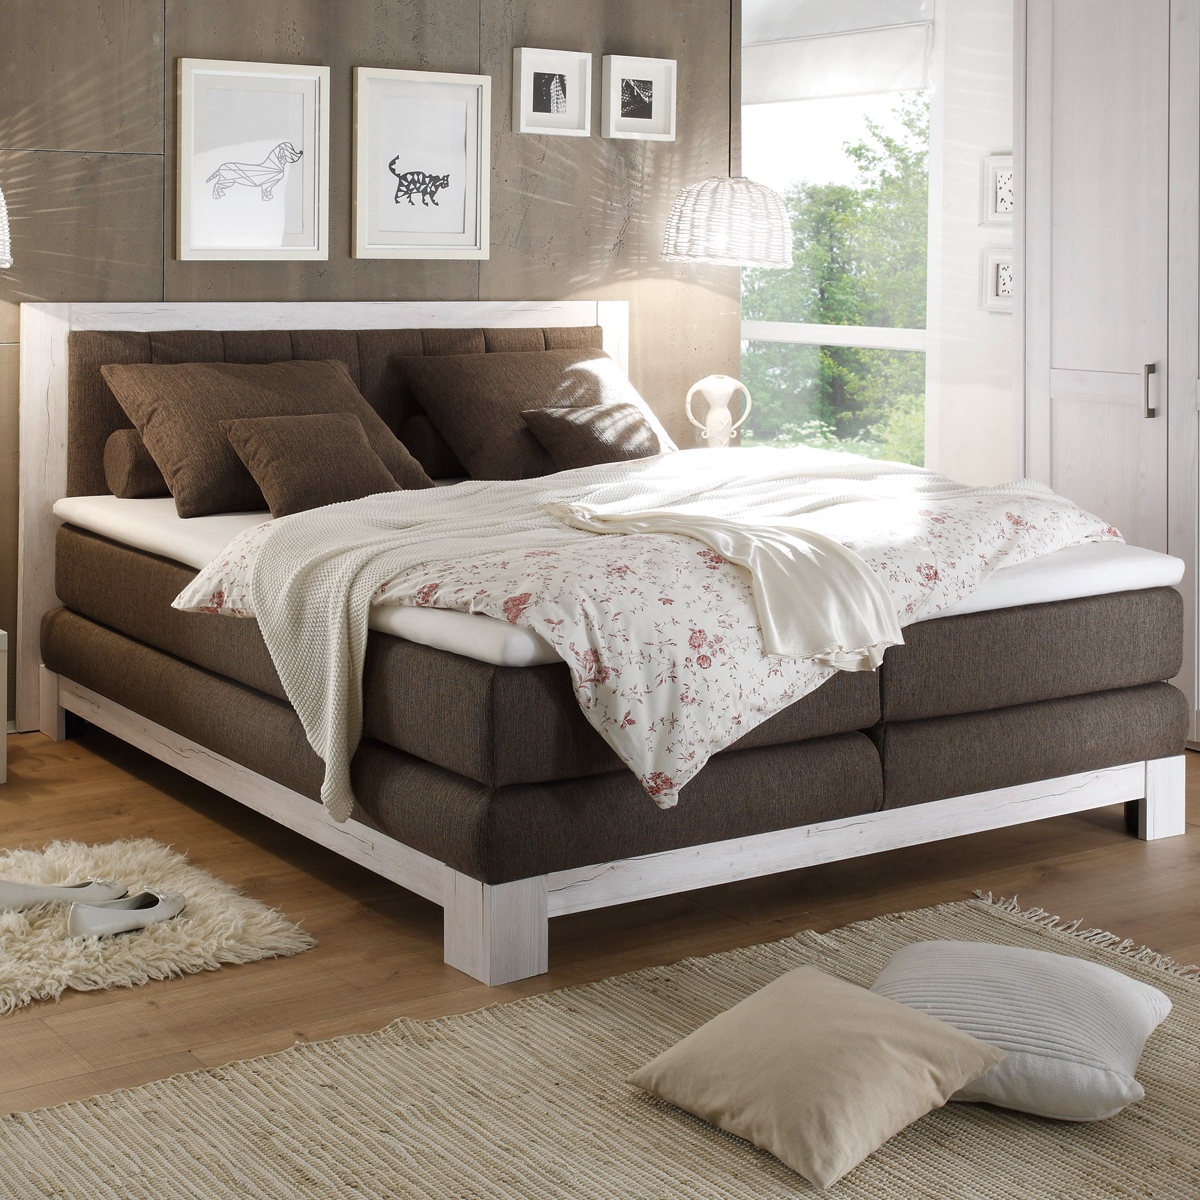 boxspring bett nevada pinie wei bezug stone ttfk matratze 180x200 cm ebay. Black Bedroom Furniture Sets. Home Design Ideas